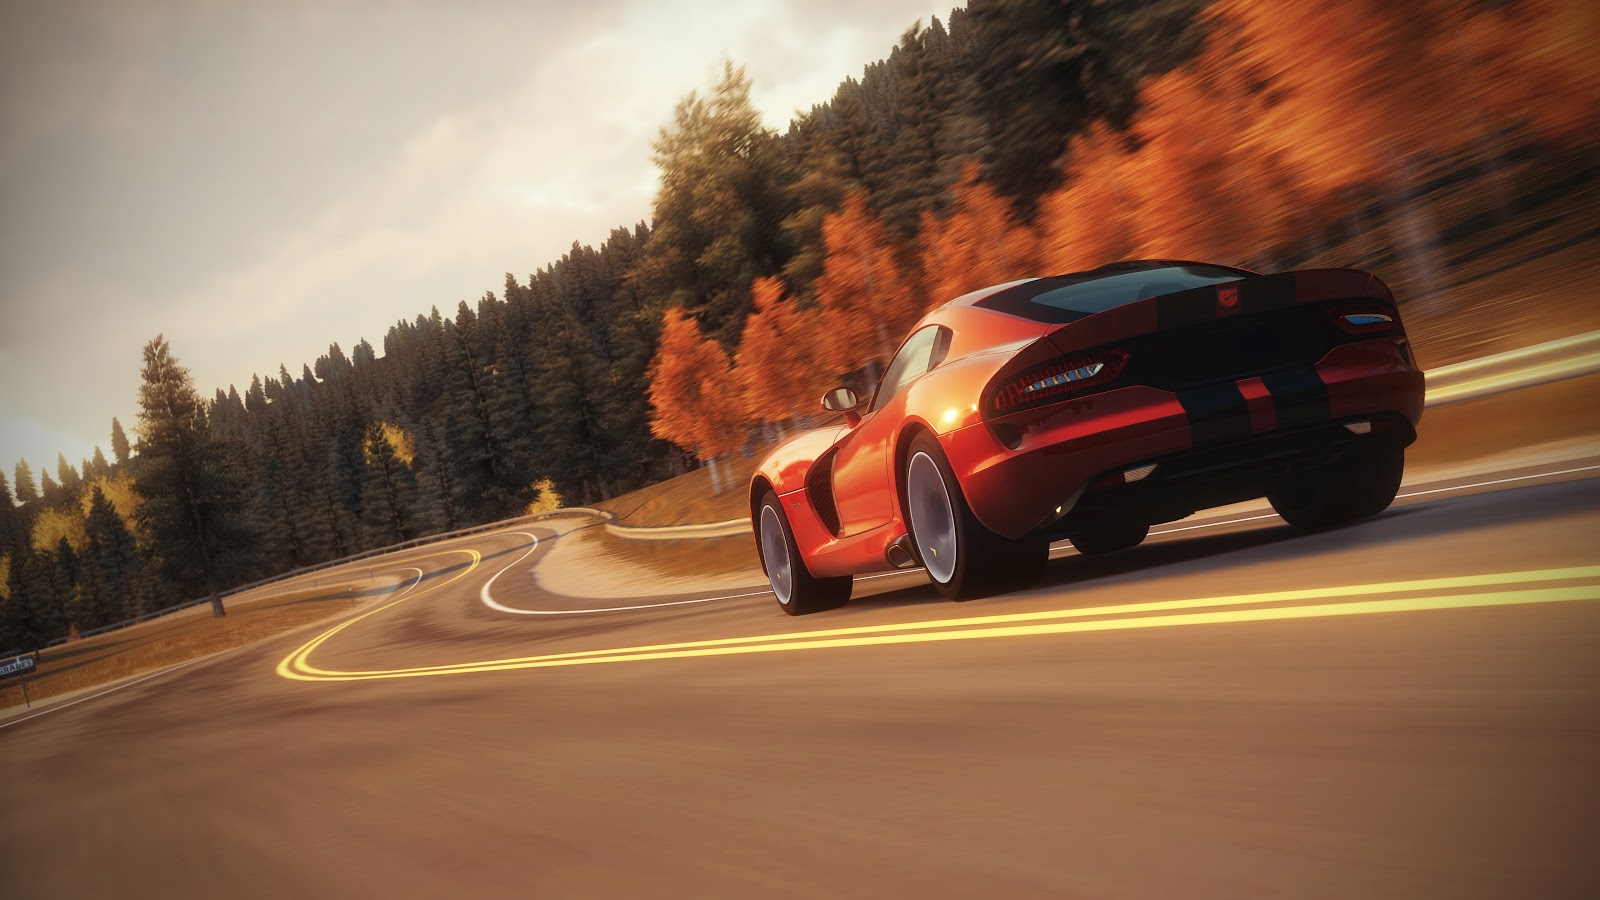 Forza Horizon HD & Widescreen Wallpaper 0.958521202196935